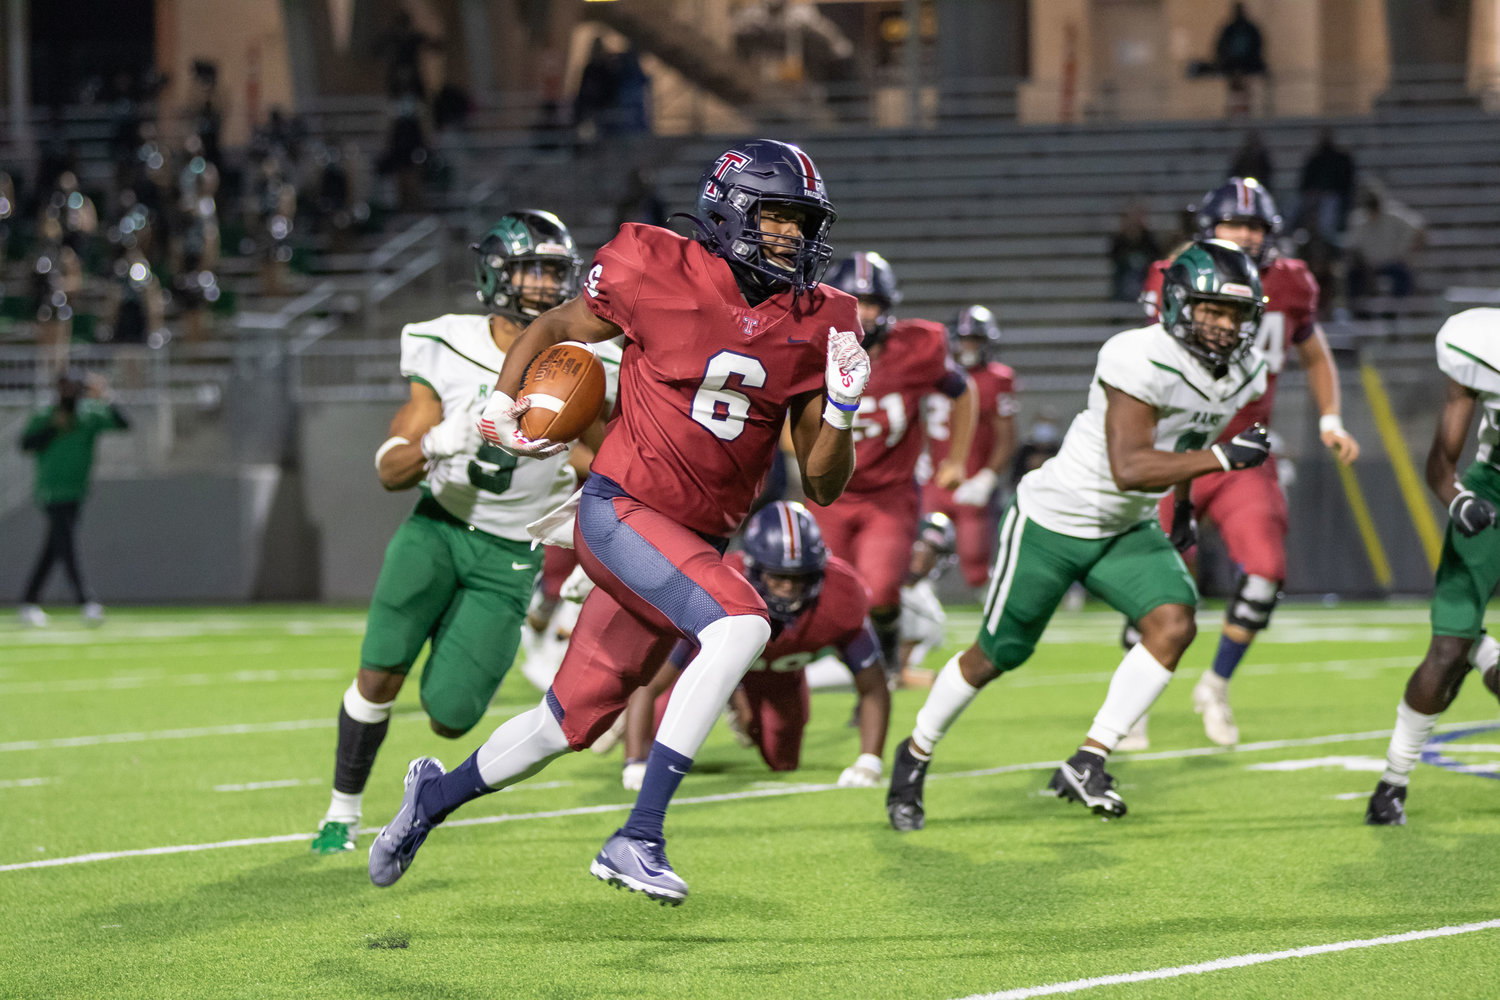 Tompkins running back Marquis Shoulders runs for a touchdown during the Falcons' win over Mayde Creek on Thursday evening at Legacy Stadium.